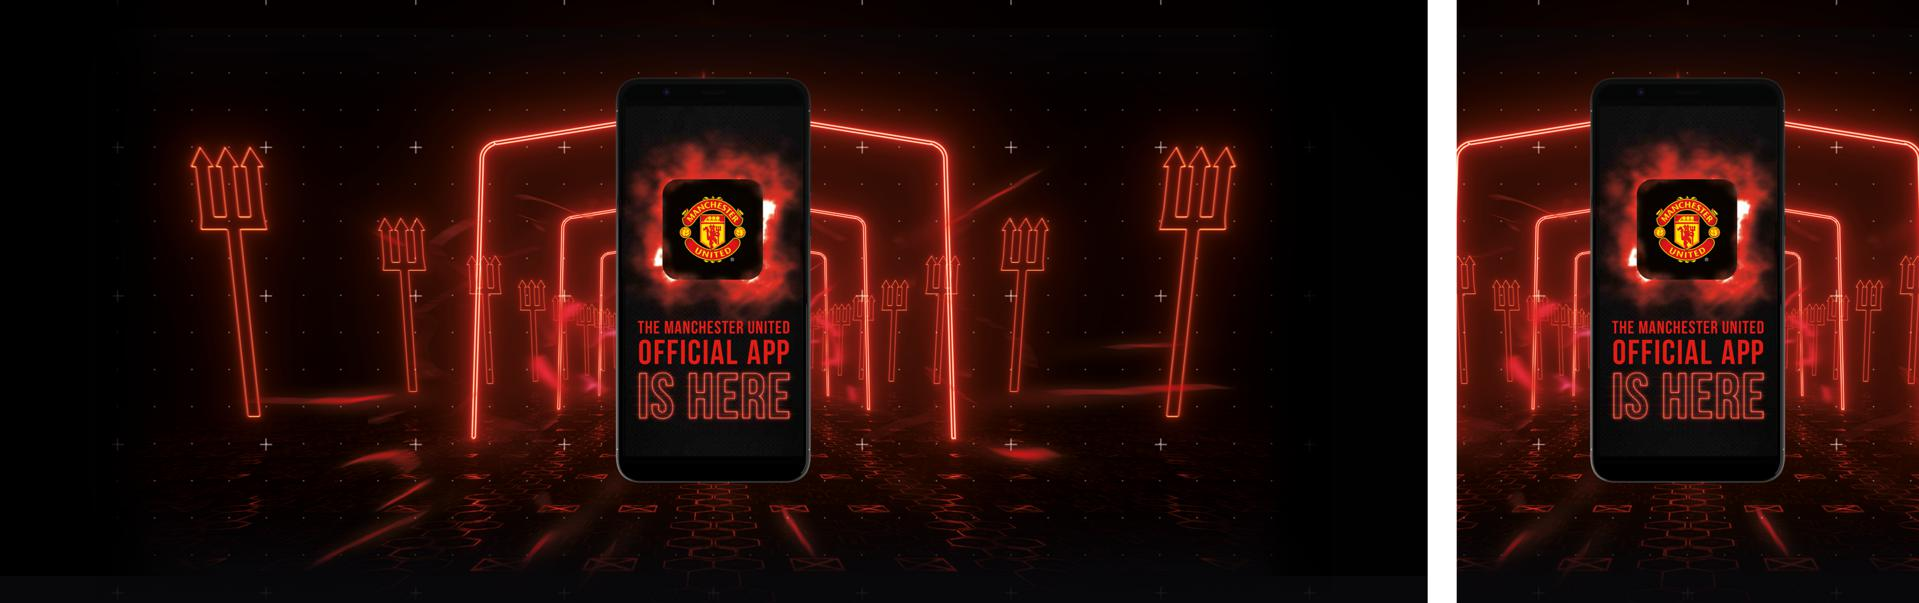 A graphic to promote the new United app.